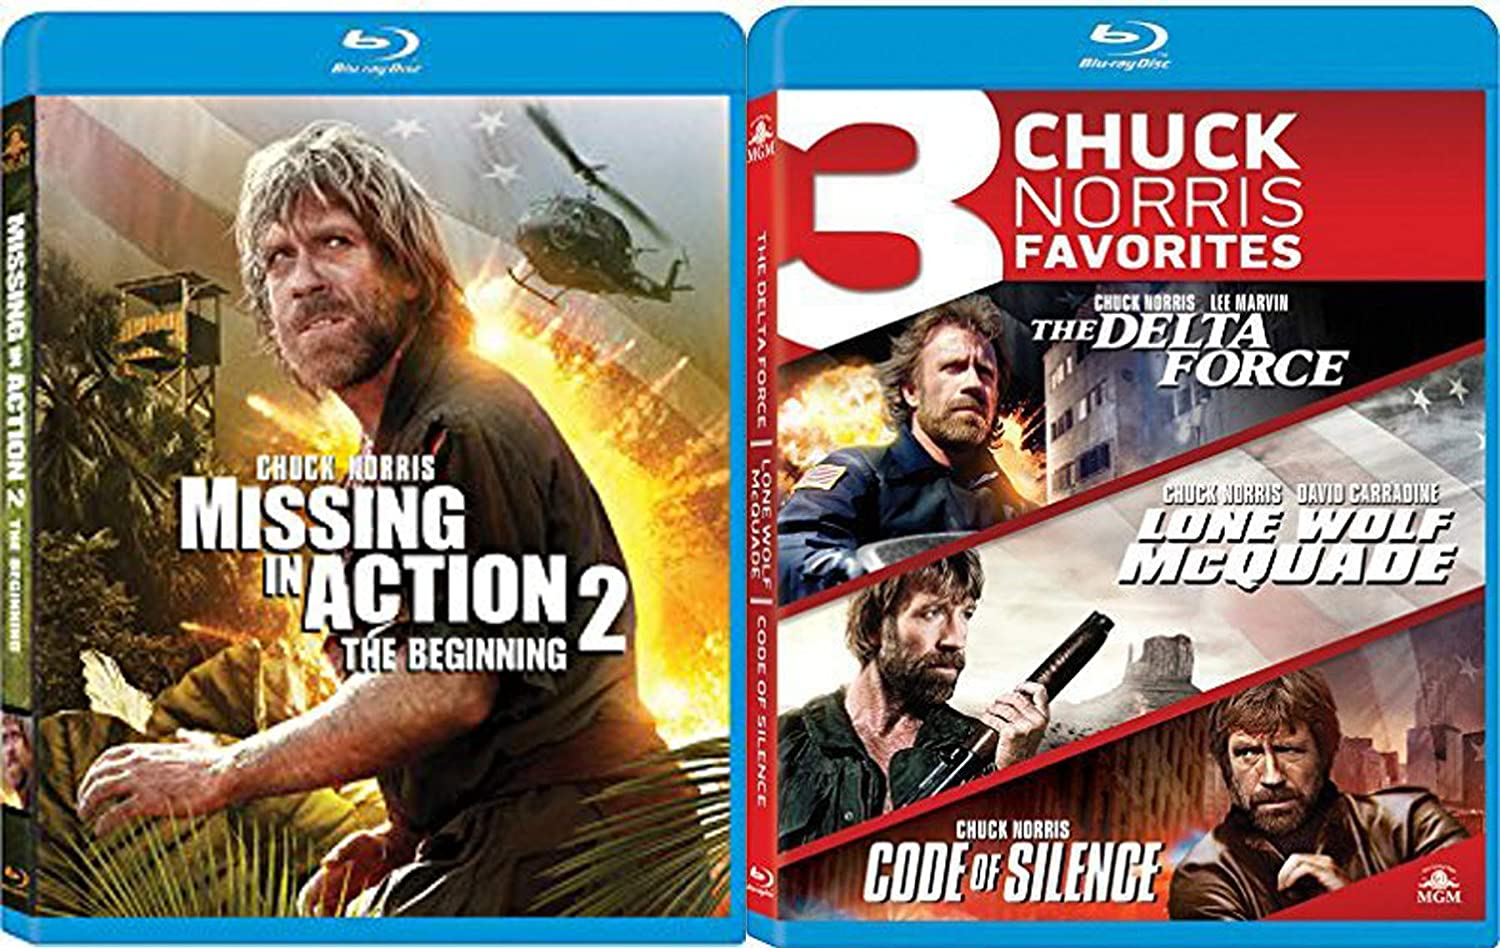 Fierce with his gun - but lethal with his black belt! Hero Chuck Norris 4-Movie Blu Ray Delta Force / Lone Wolf McQuade / Code of Silence / Missing in Action Part 2 The Beginning Film Man Marathon